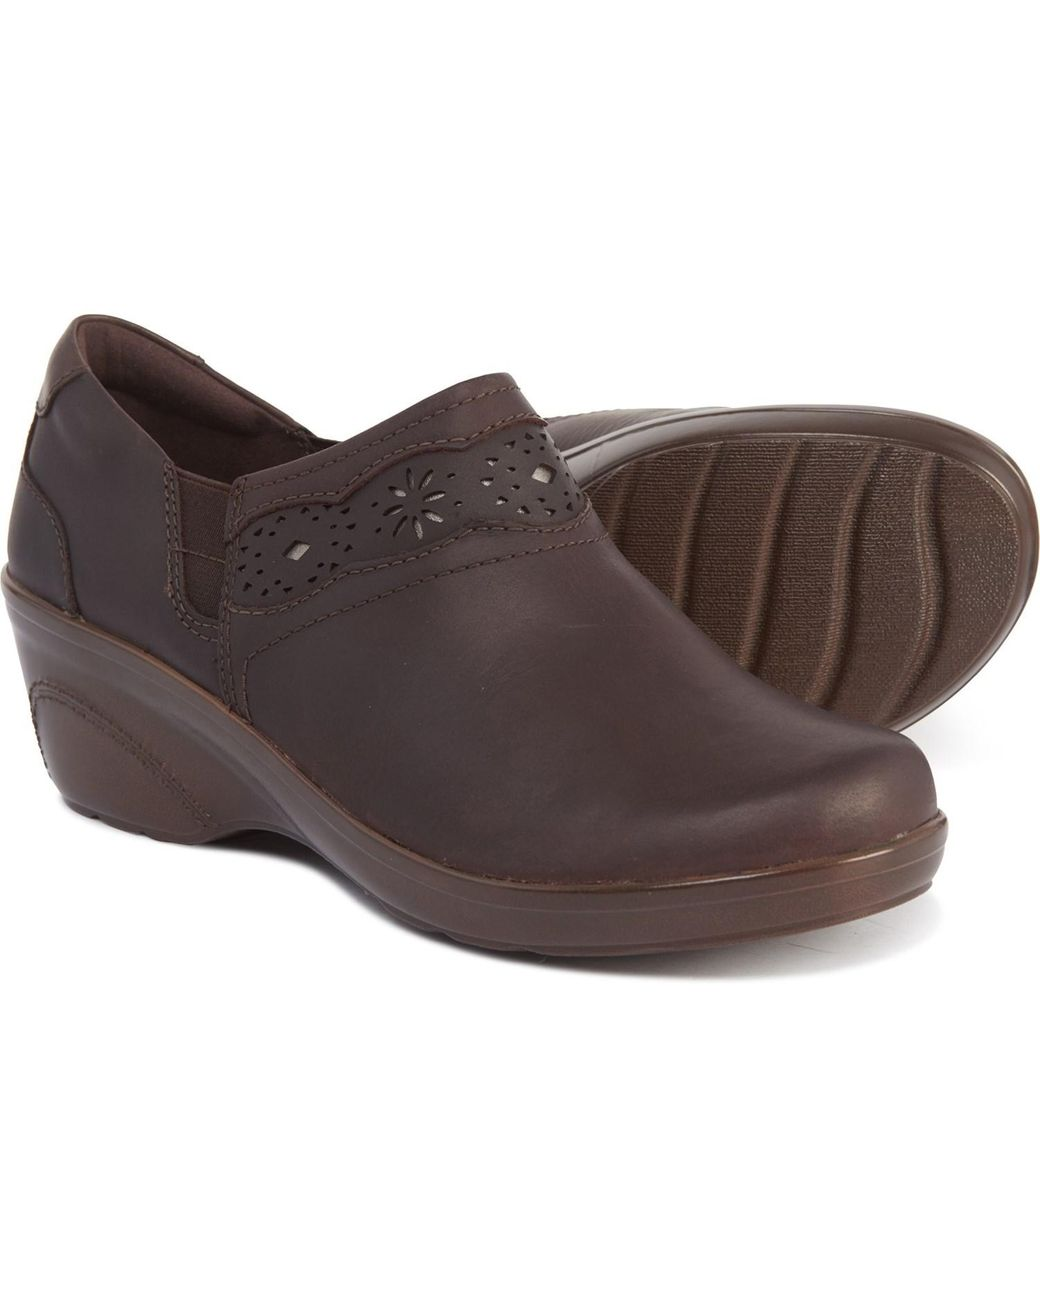 Clarks Dark Brown Marion Helen Cut-out detail Slip-on Wedge Shoes NEW